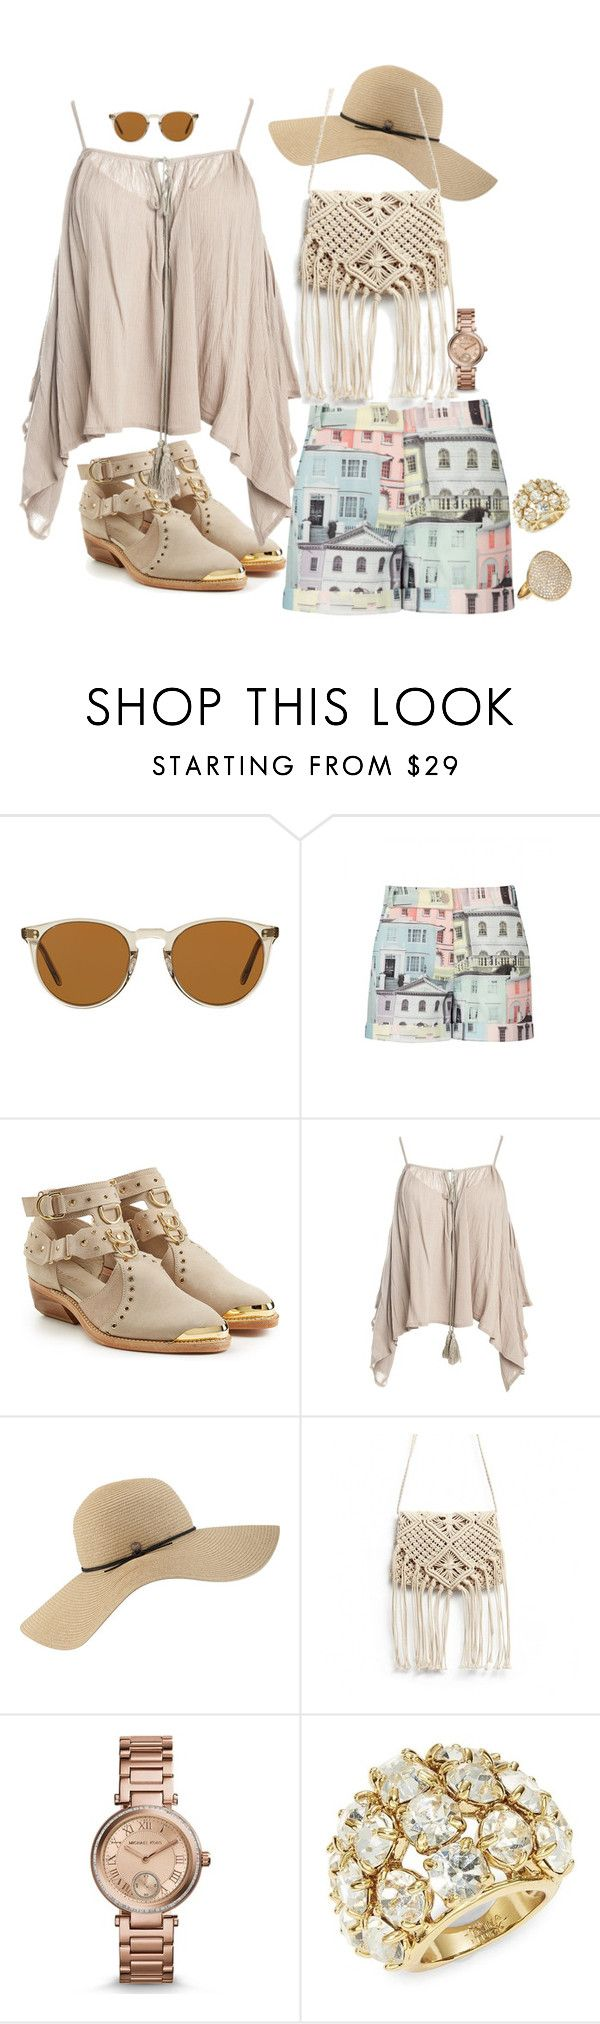 """""""#hautw- hot- trends.com / Back At Ya"""" by blujay1126 ❤ liked on Polyvore featuring Oliver Peoples, Ted Baker, Balmain, Sans Souci, Coal, Michael Kors, Trina Turk and Ippolita"""